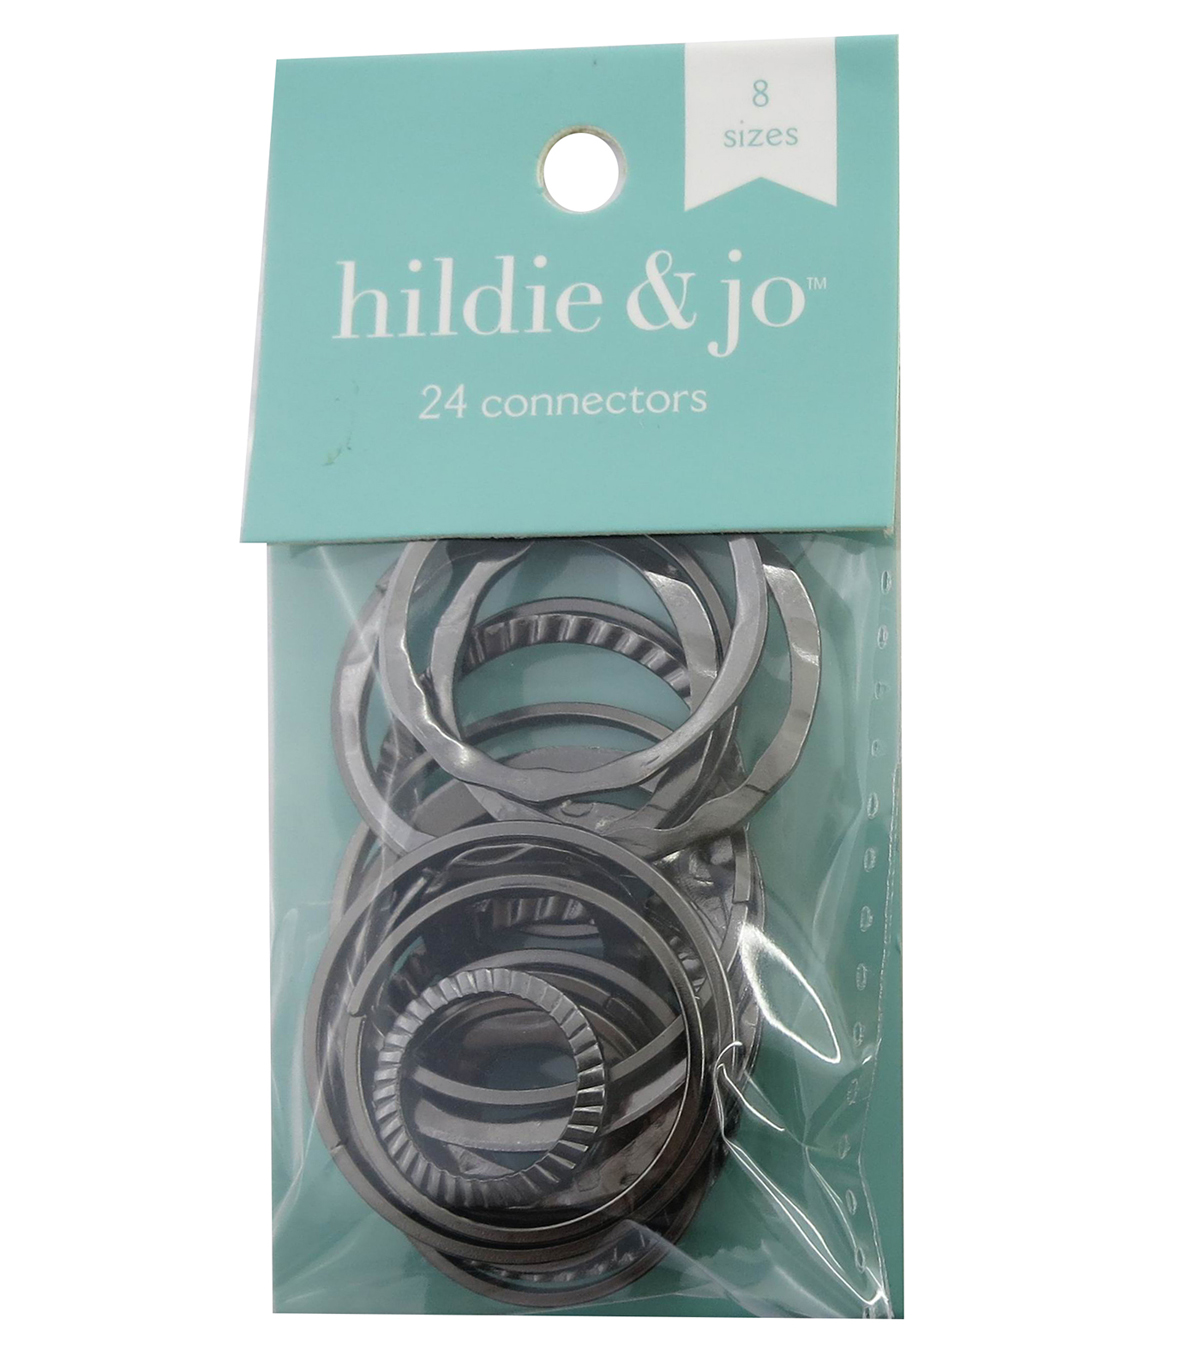 hildie & jo 24 Pack Circle Connectors-Black Nickel